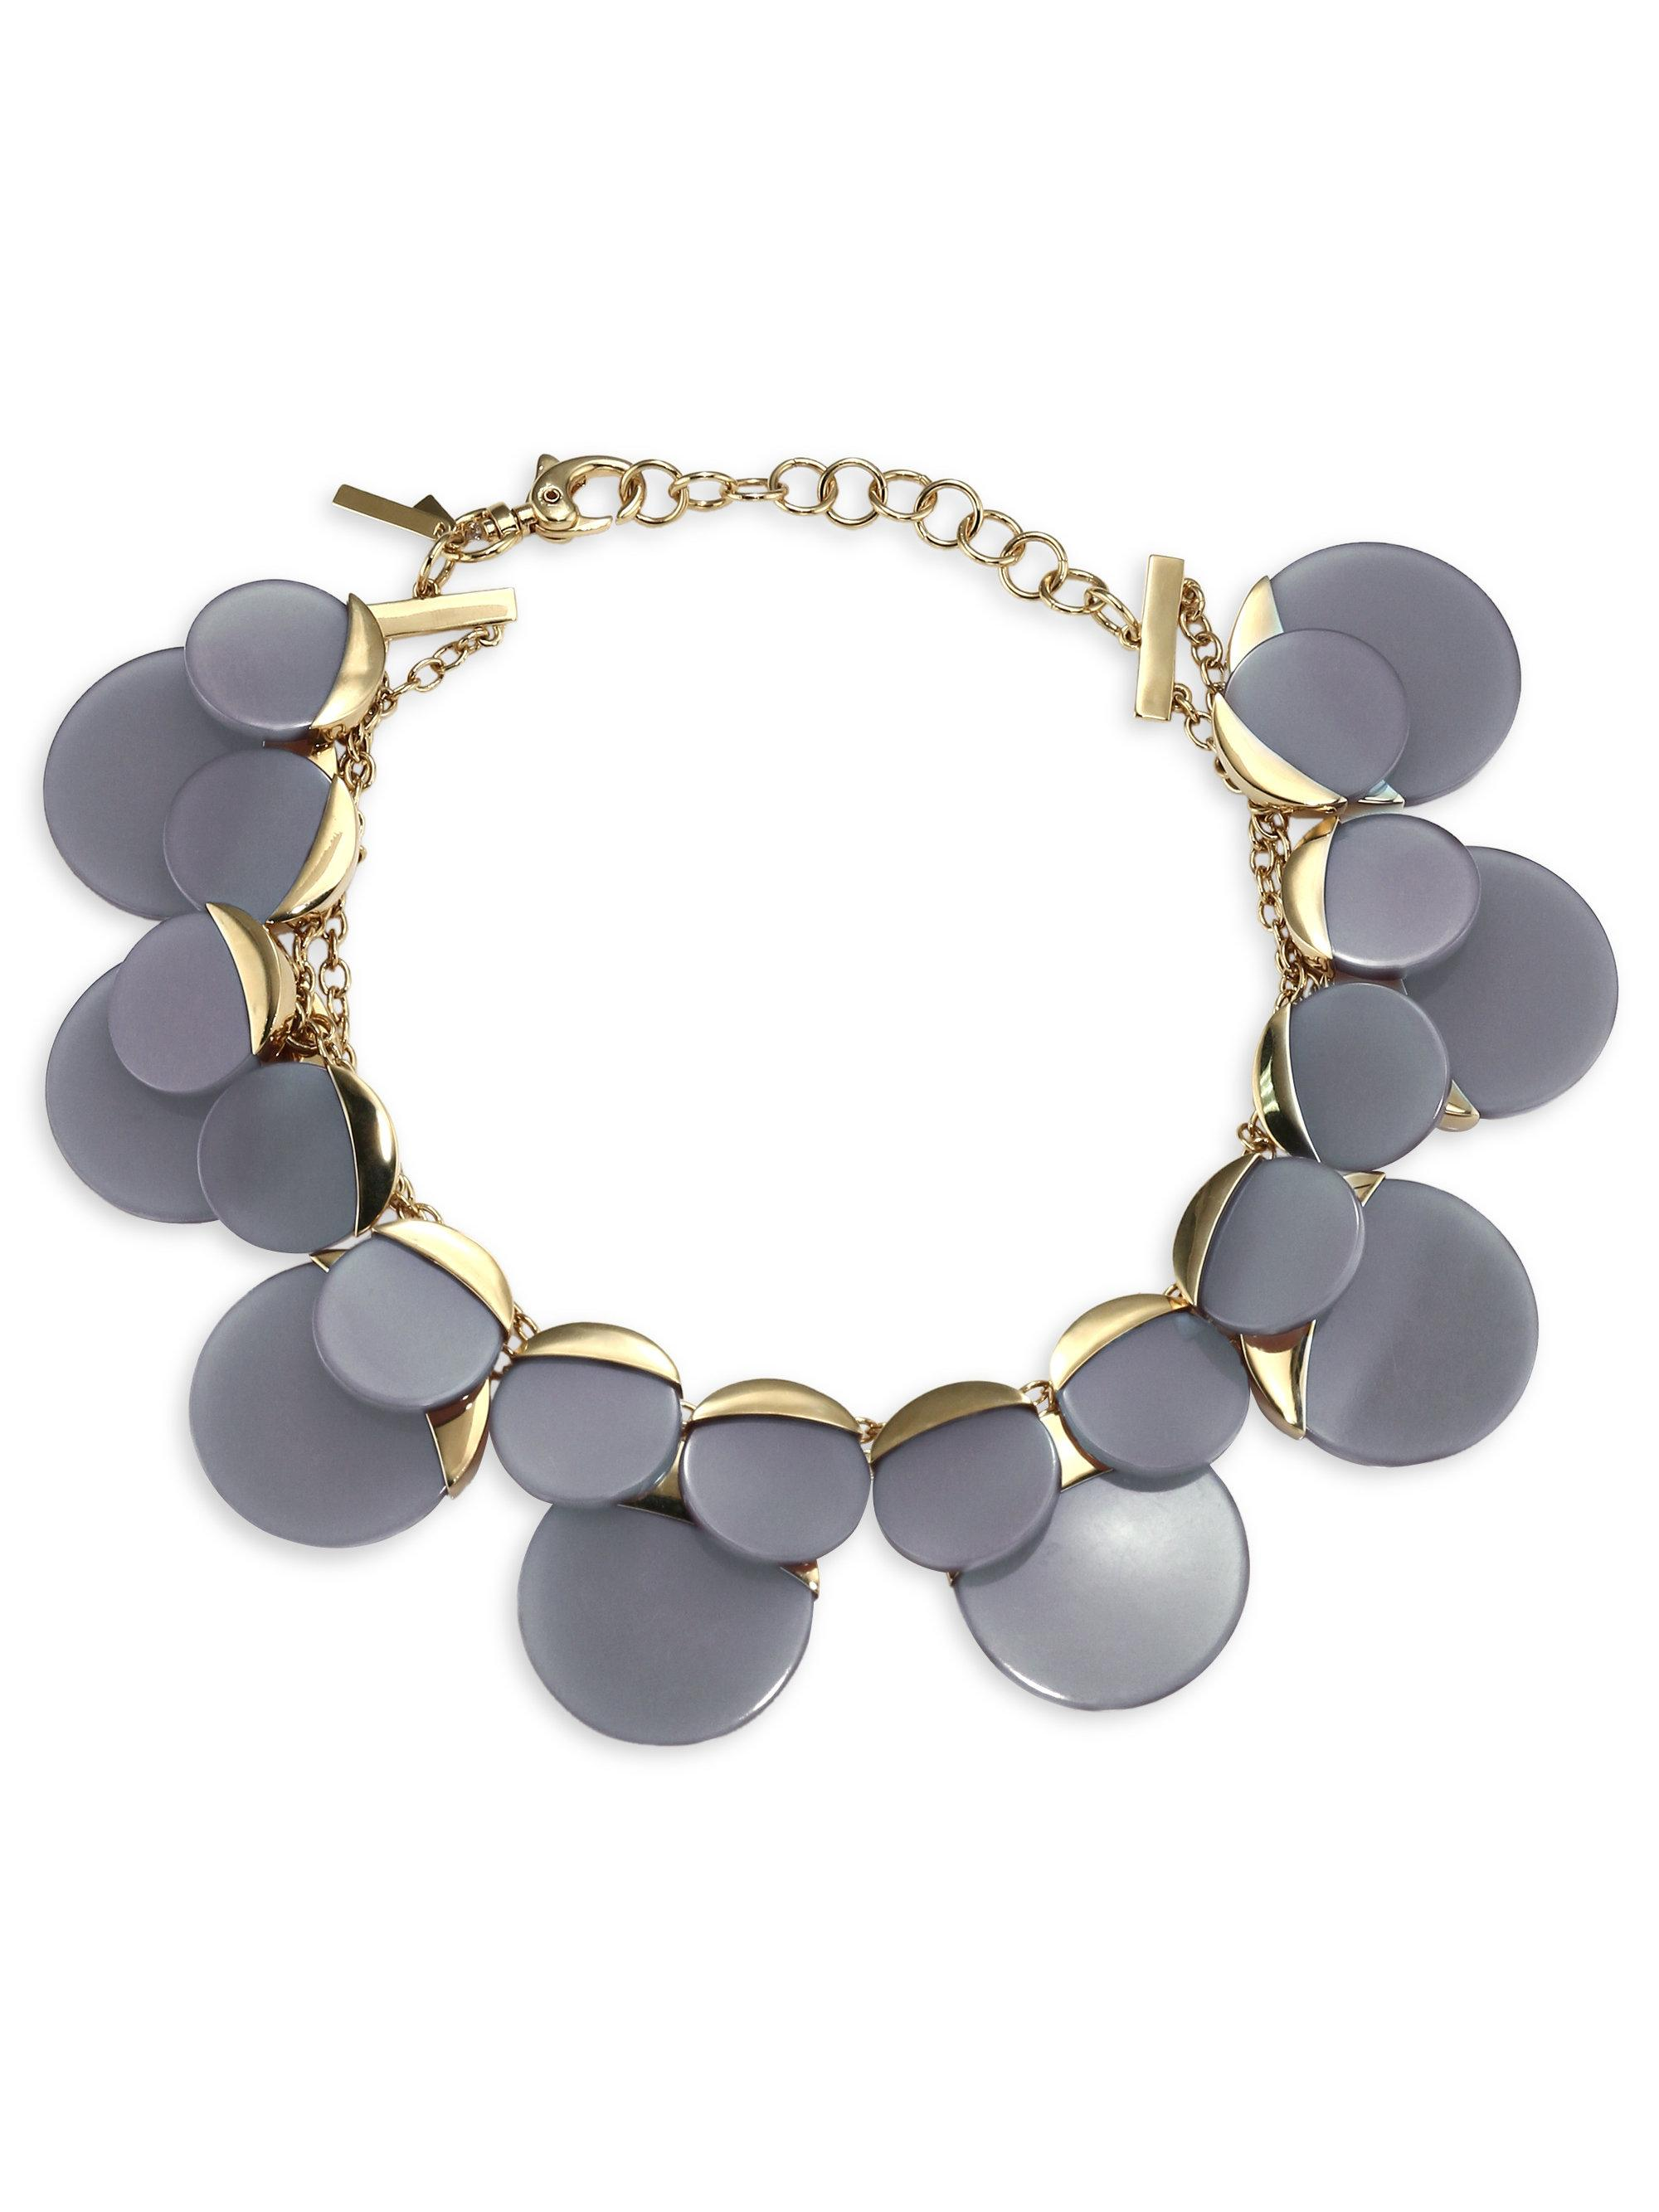 Lele Sadoughi Gardenia Colorblocked Statement Collar Necklace AzmrkRNS